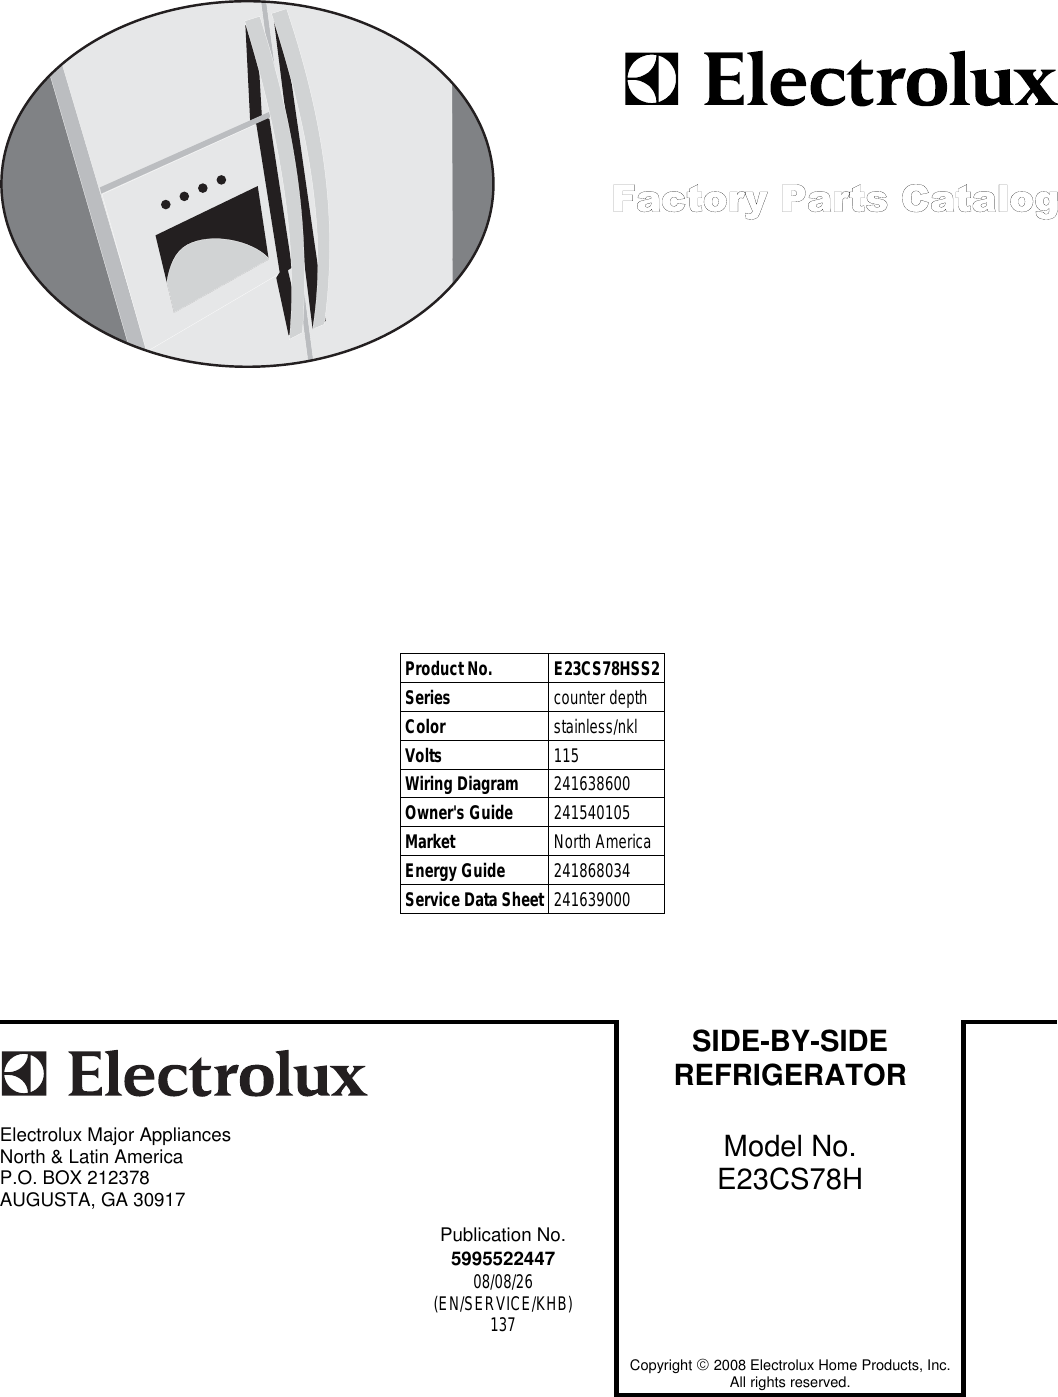 Electrolux E23cs78h Users Manual To Begin A Parts Catalog Click Copyright 2008 Ab Cable And Wiring All Rights Reserved Load Contents In The Top Menu Bar